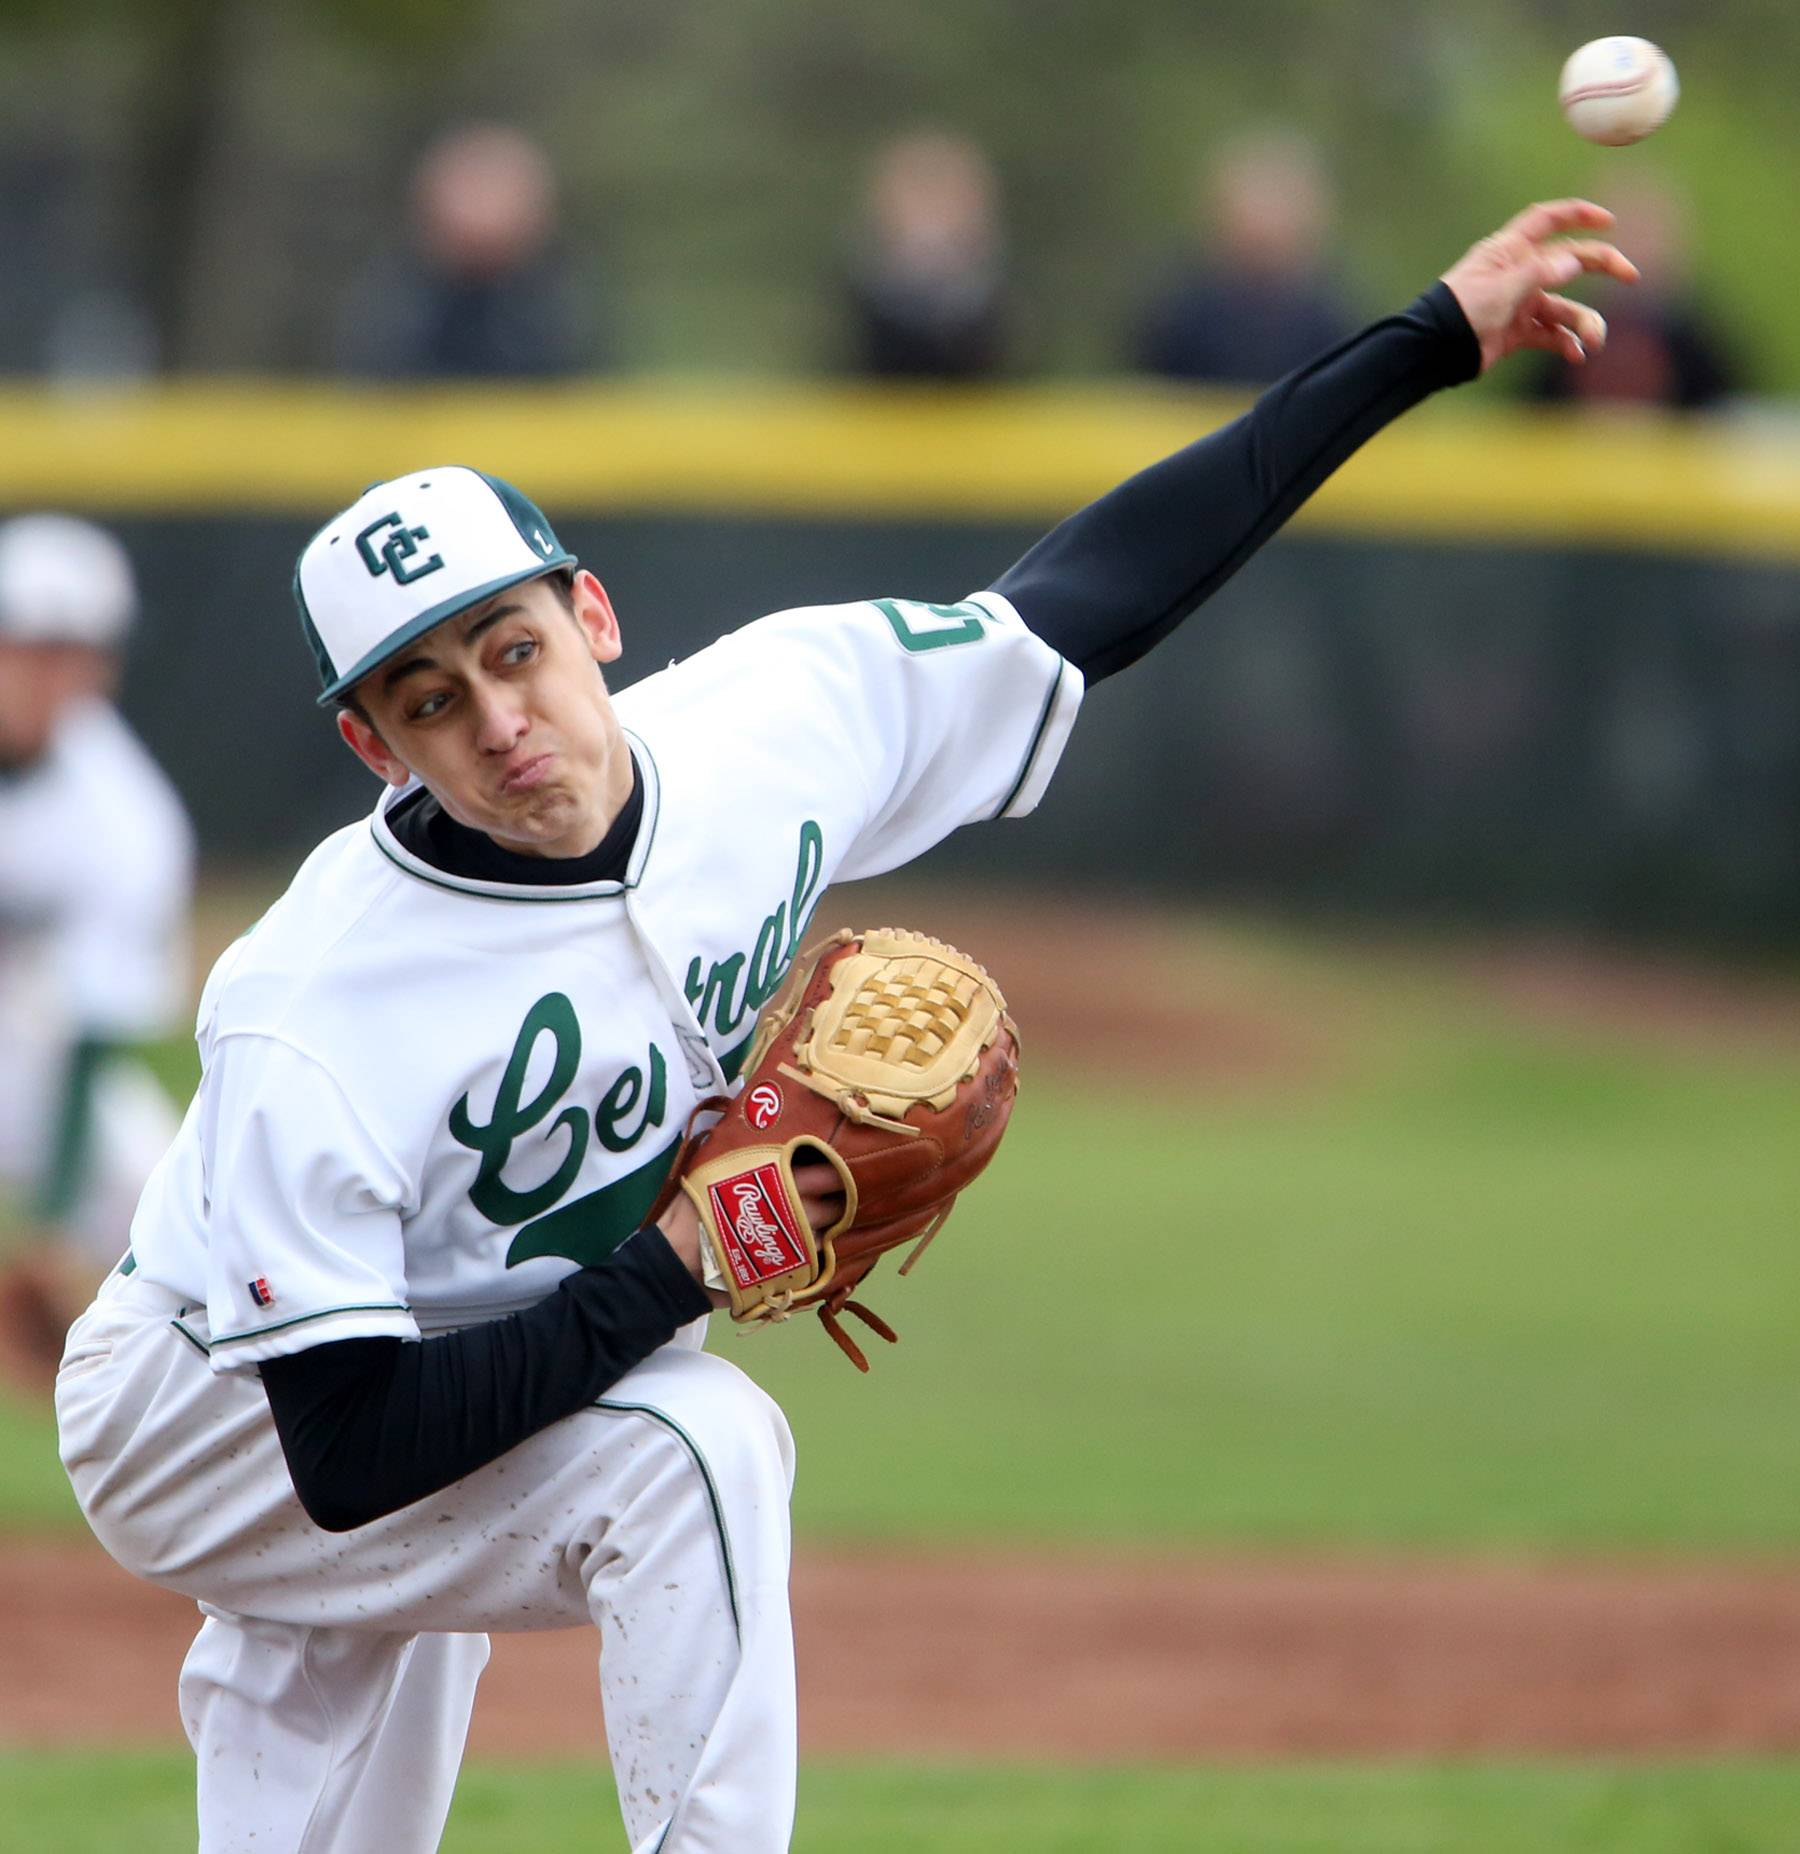 Grayslake Central pitcher Justin Guryn delivers against Grayslake North on Friday at Grayslake Central.